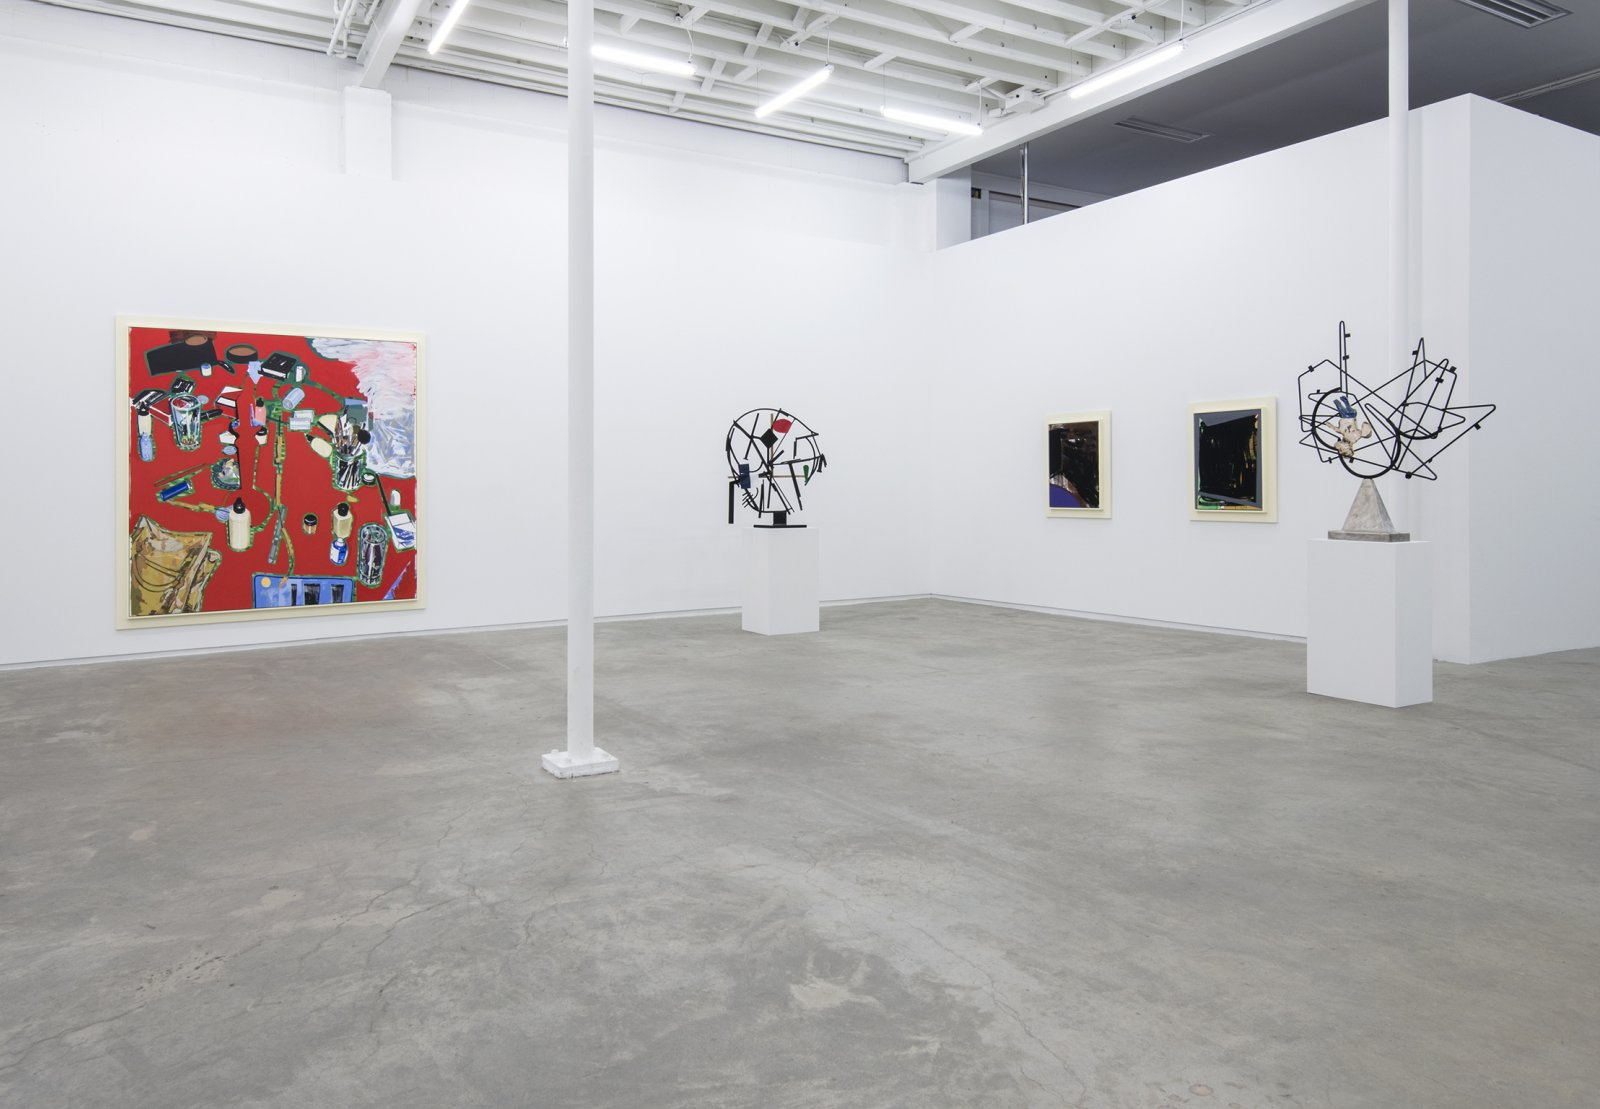 Damian Moppett, installation view, Salute, Catriona Jeffries, 2013 by Damian Moppett